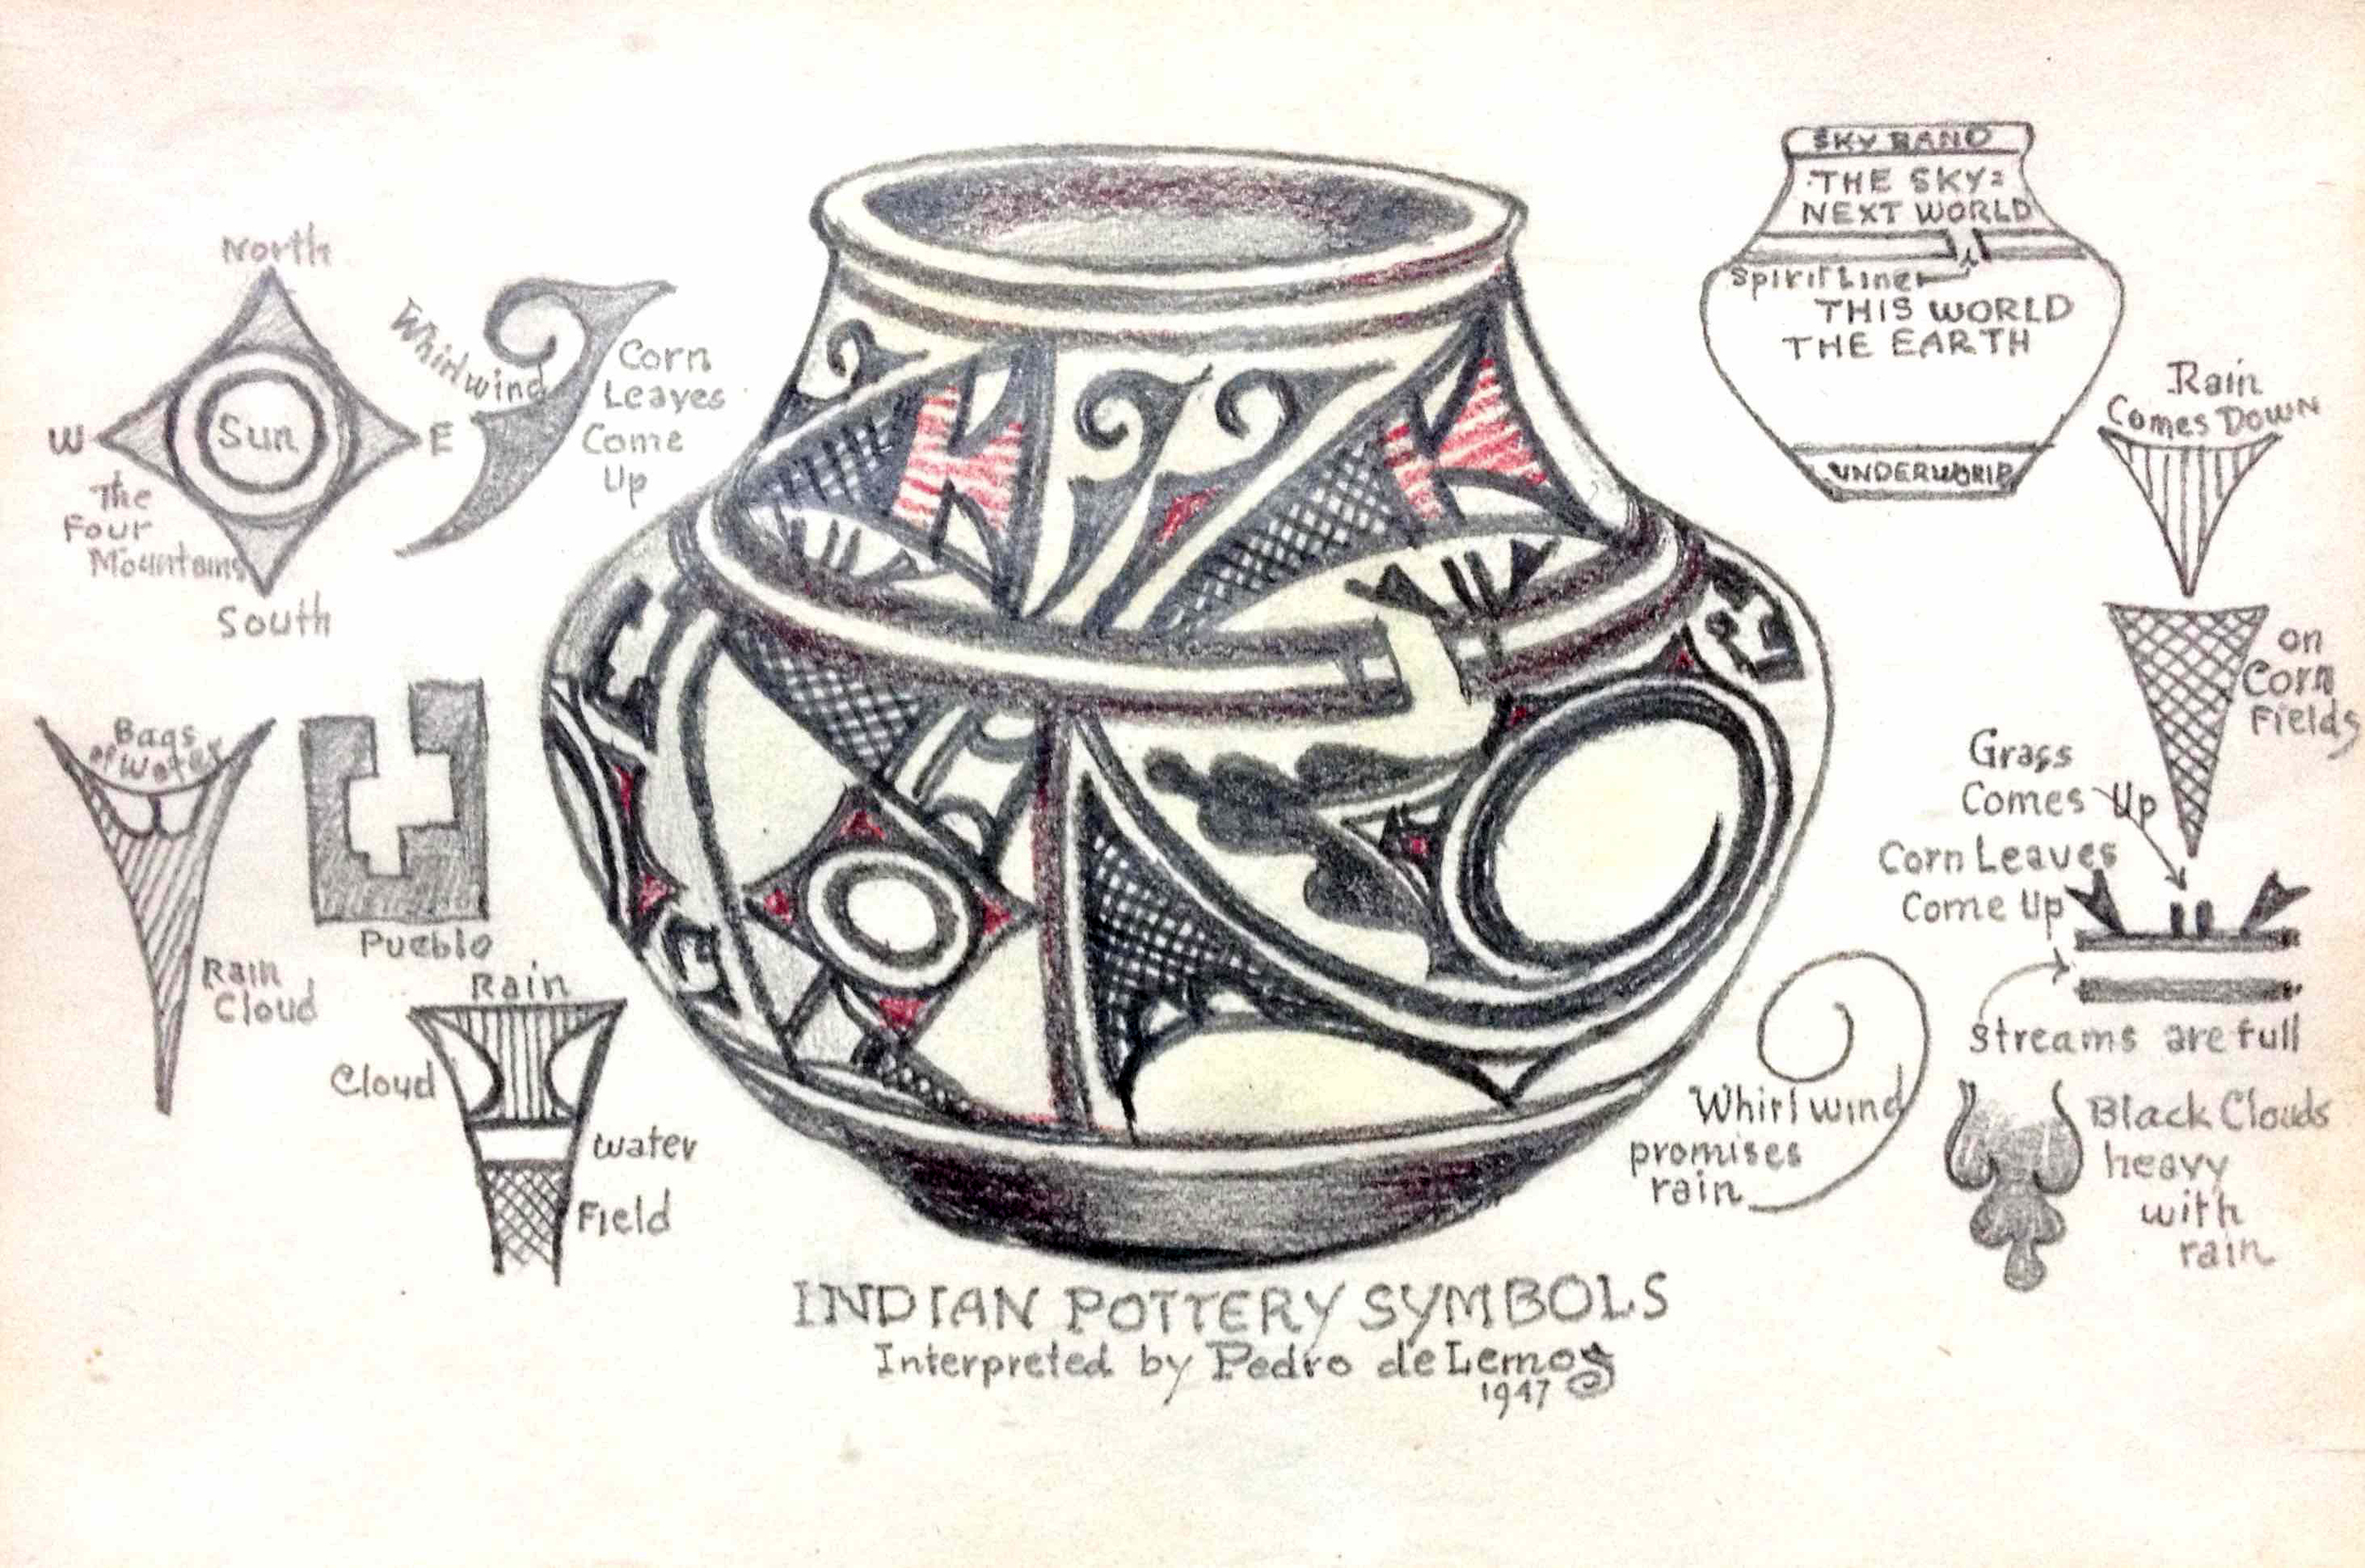 What made Pedro de Lemos an authority on interpreting Zuni pottery symbols? Why would he have made this drawing for our regional museum?